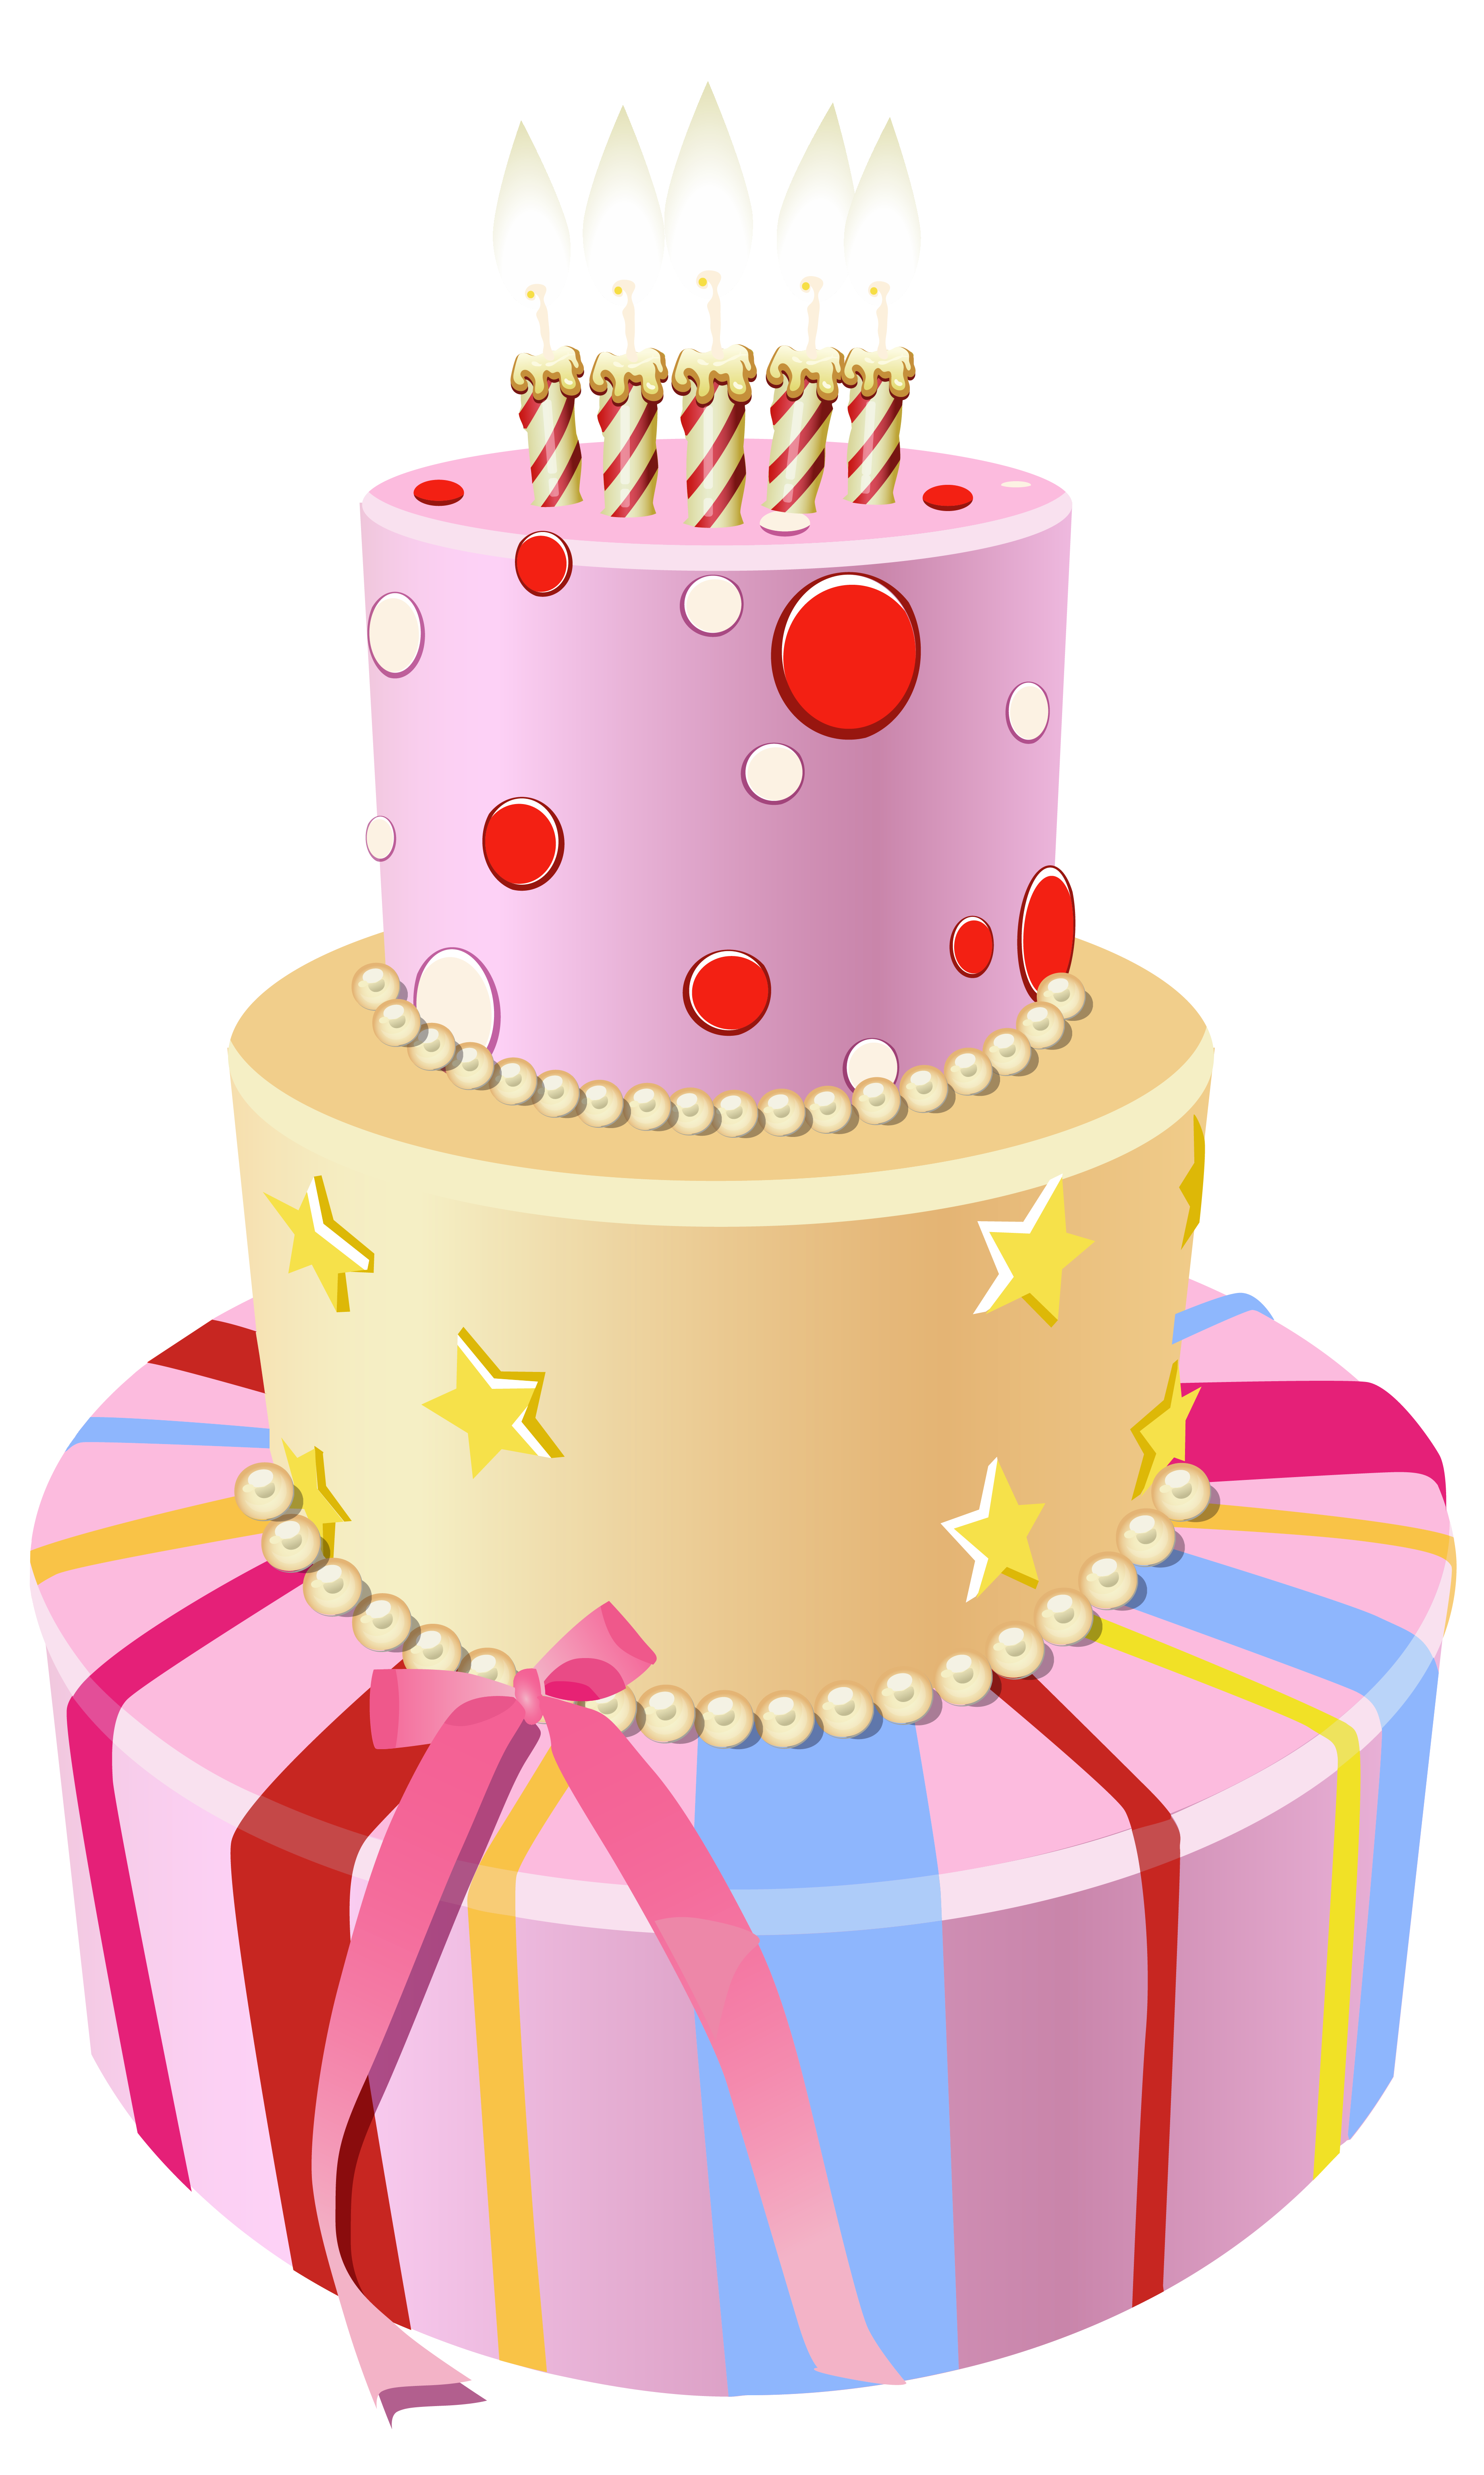 Cake pink image collections. Clipart rose birthday